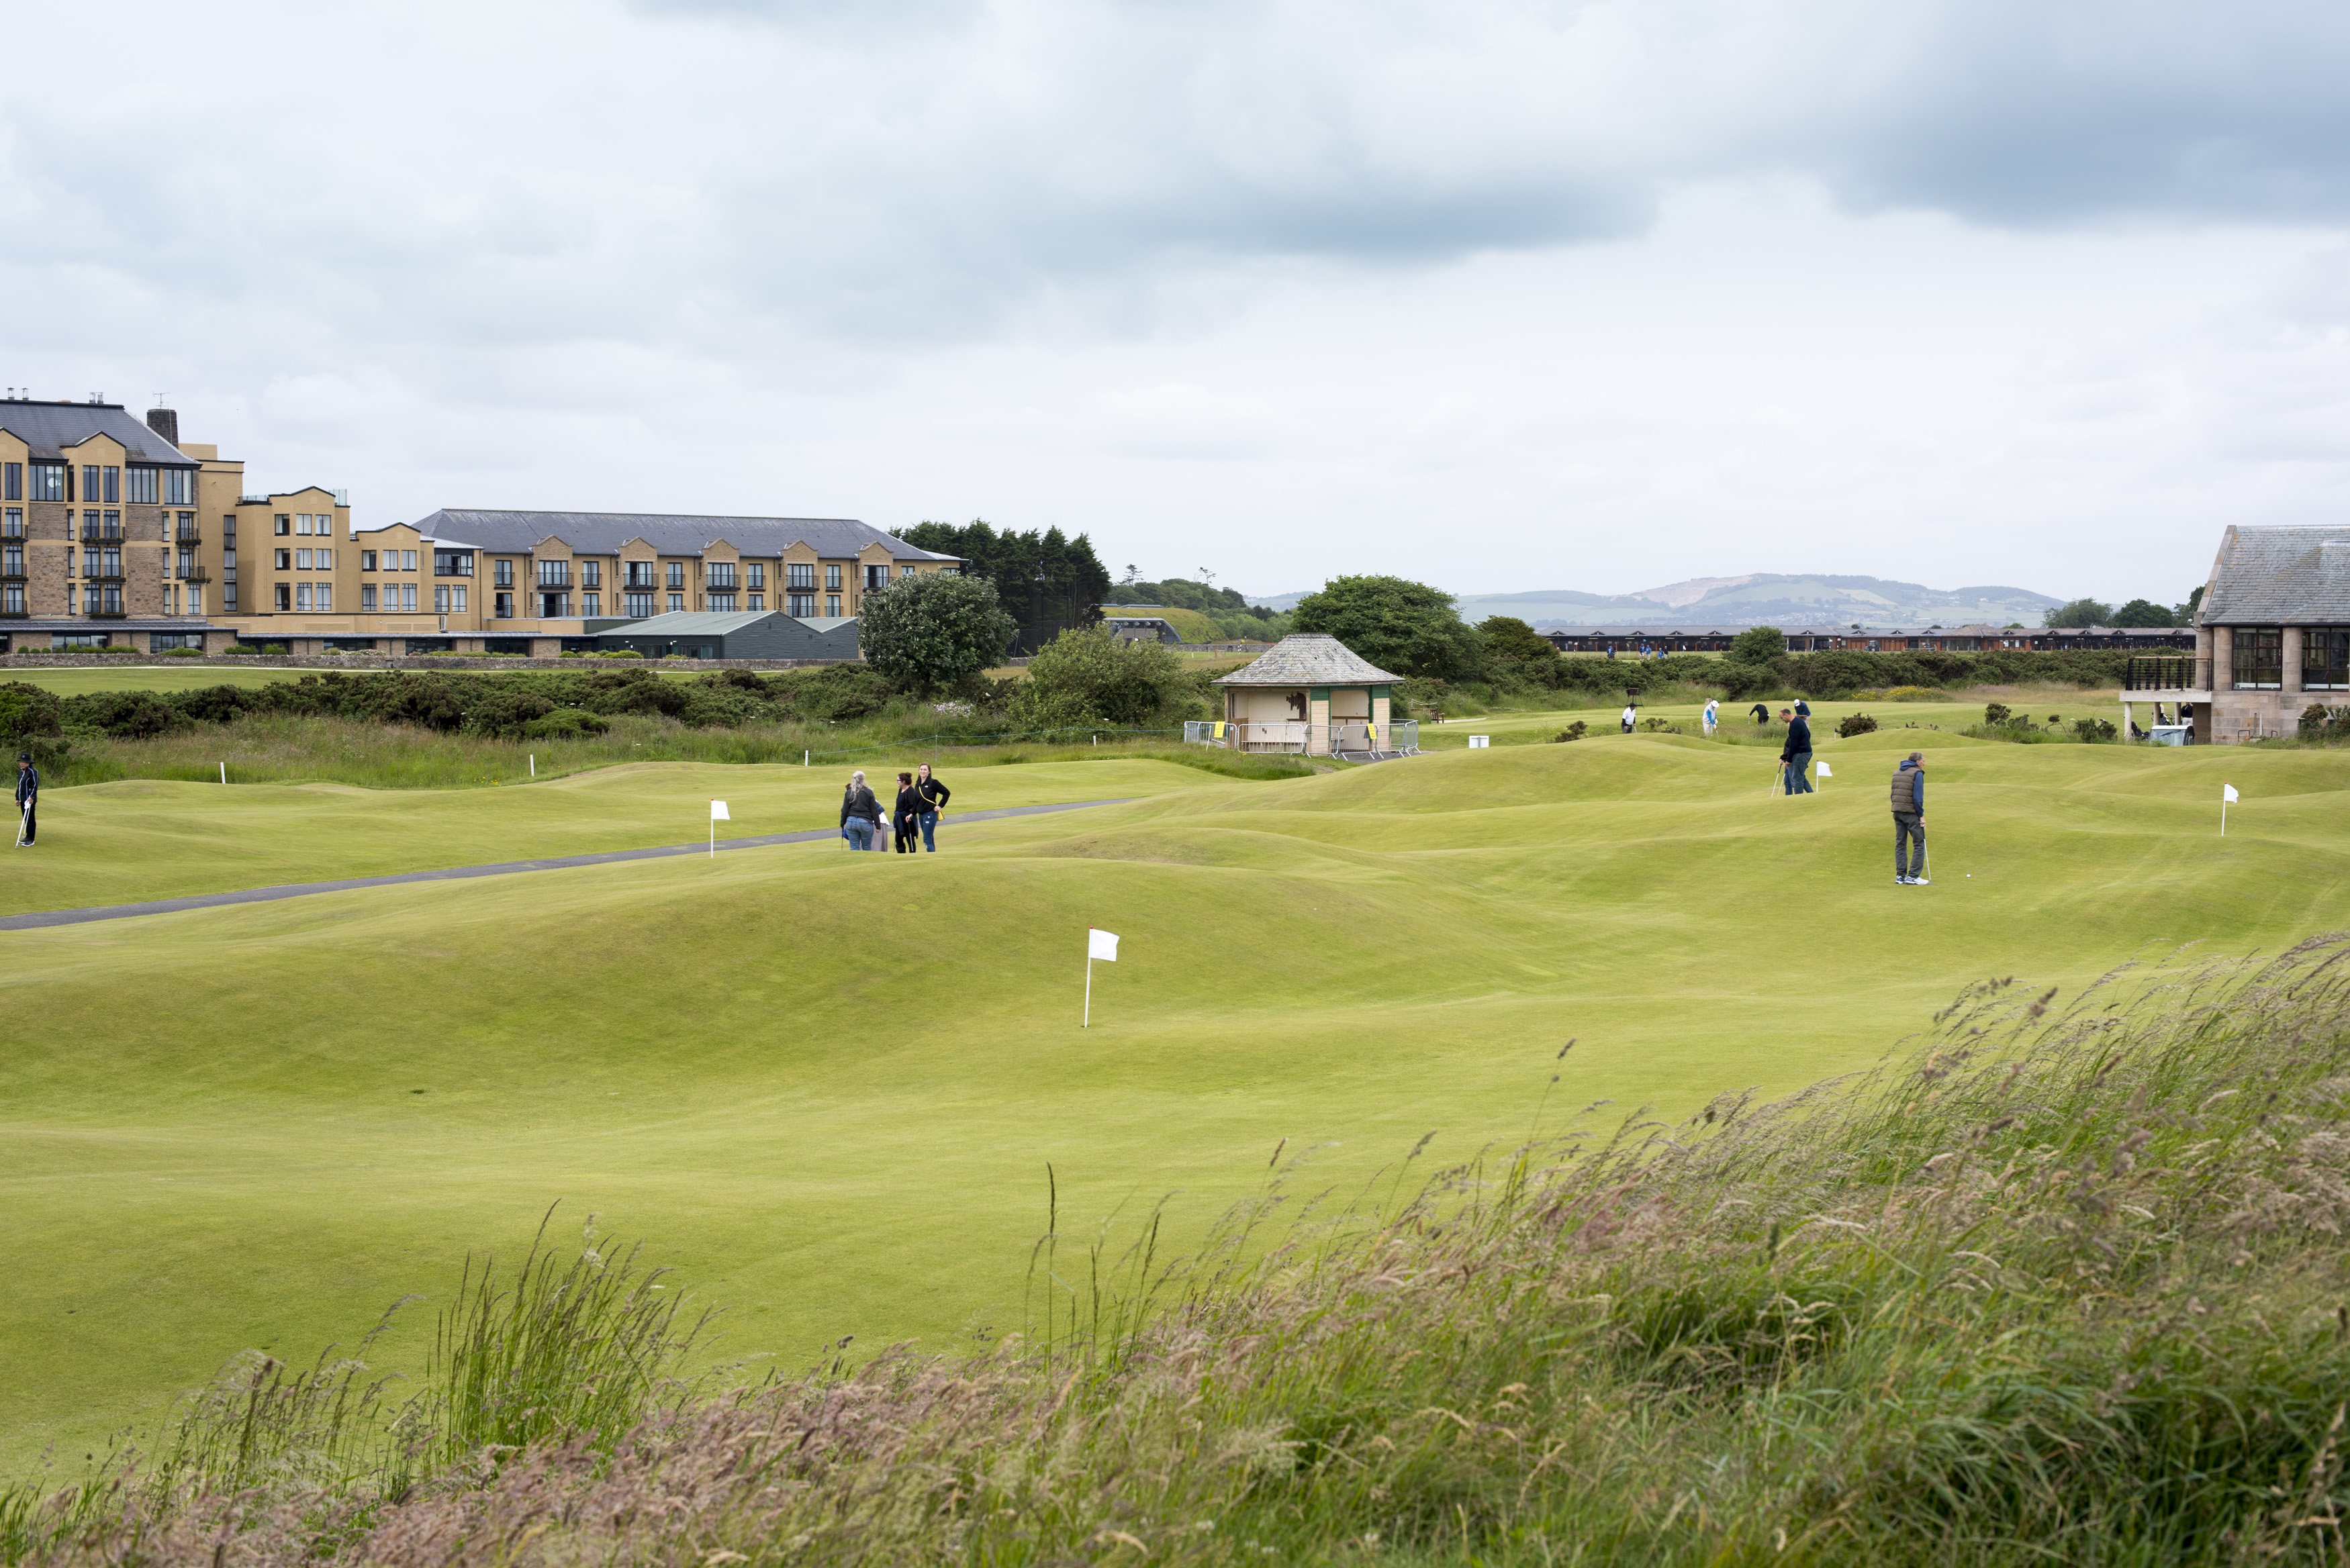 Golfers playing a round of golf on the course at St Andrews, Scotland with the clubhouse visible in the distance under a cloudy grey sky